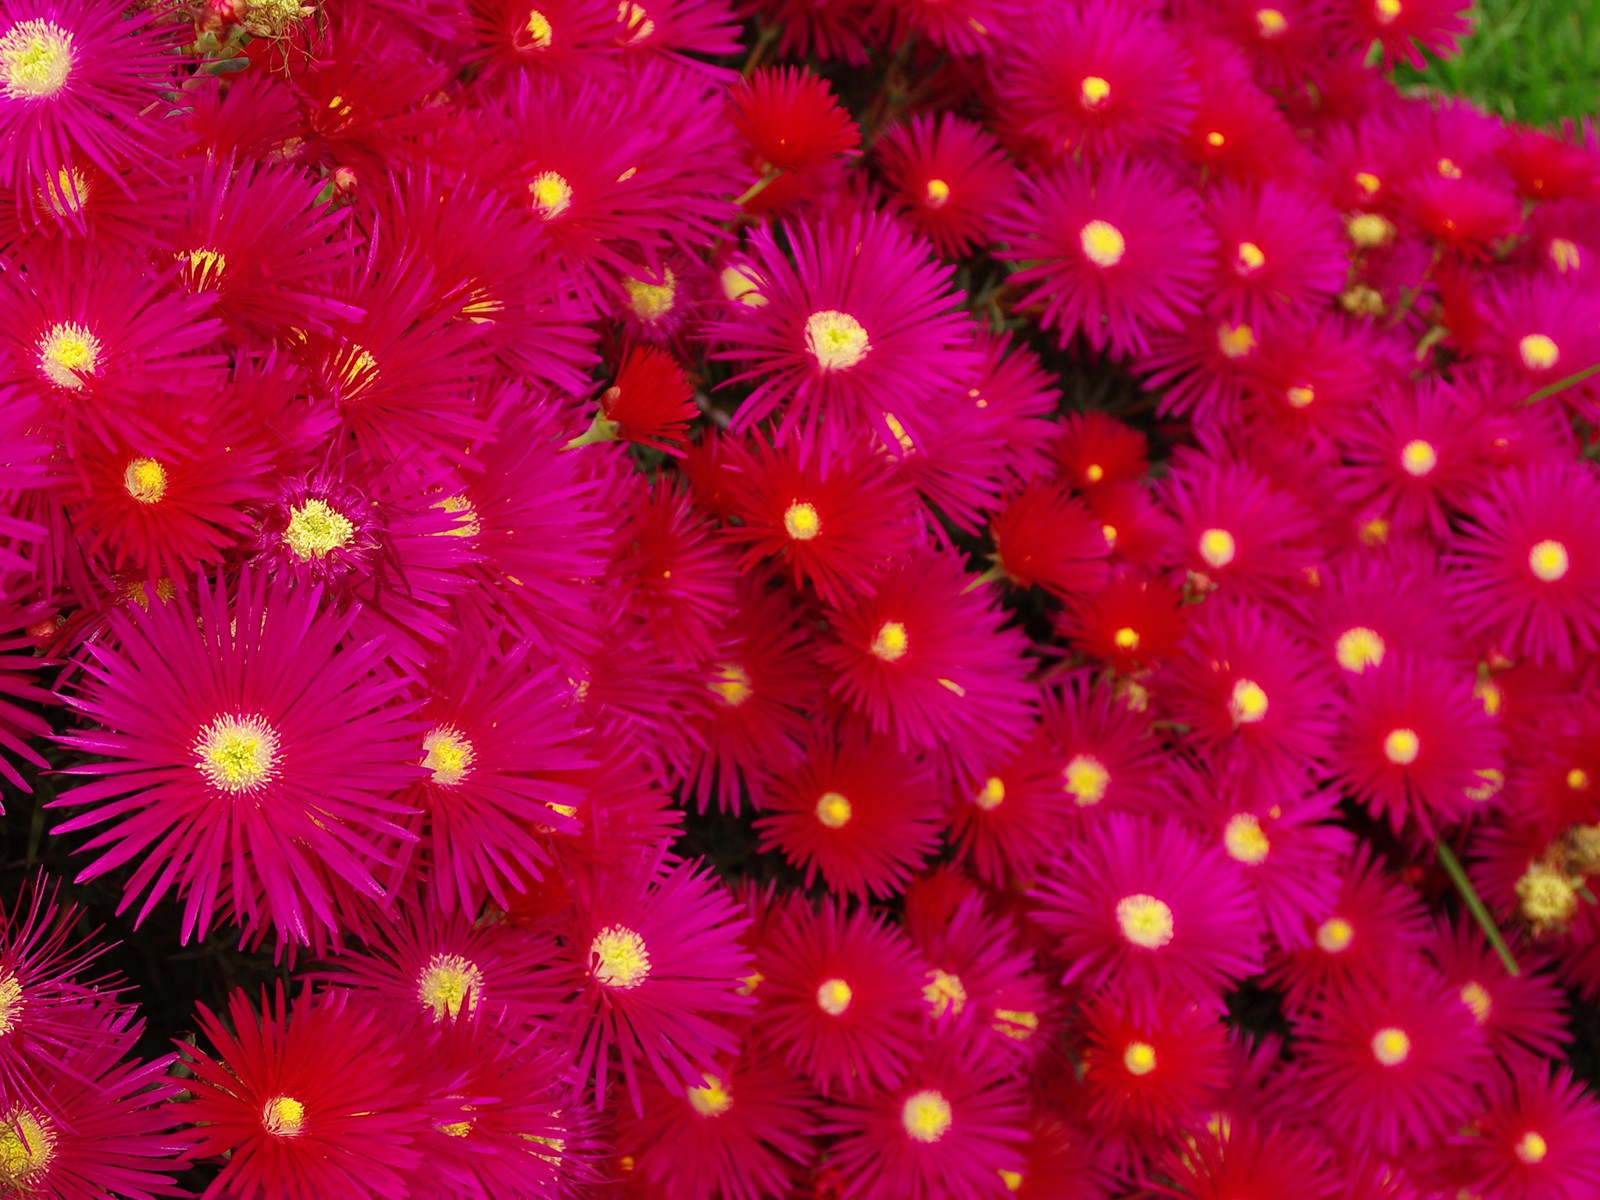 Bright Pink Flowers Wallpaper 1600x1200 66316